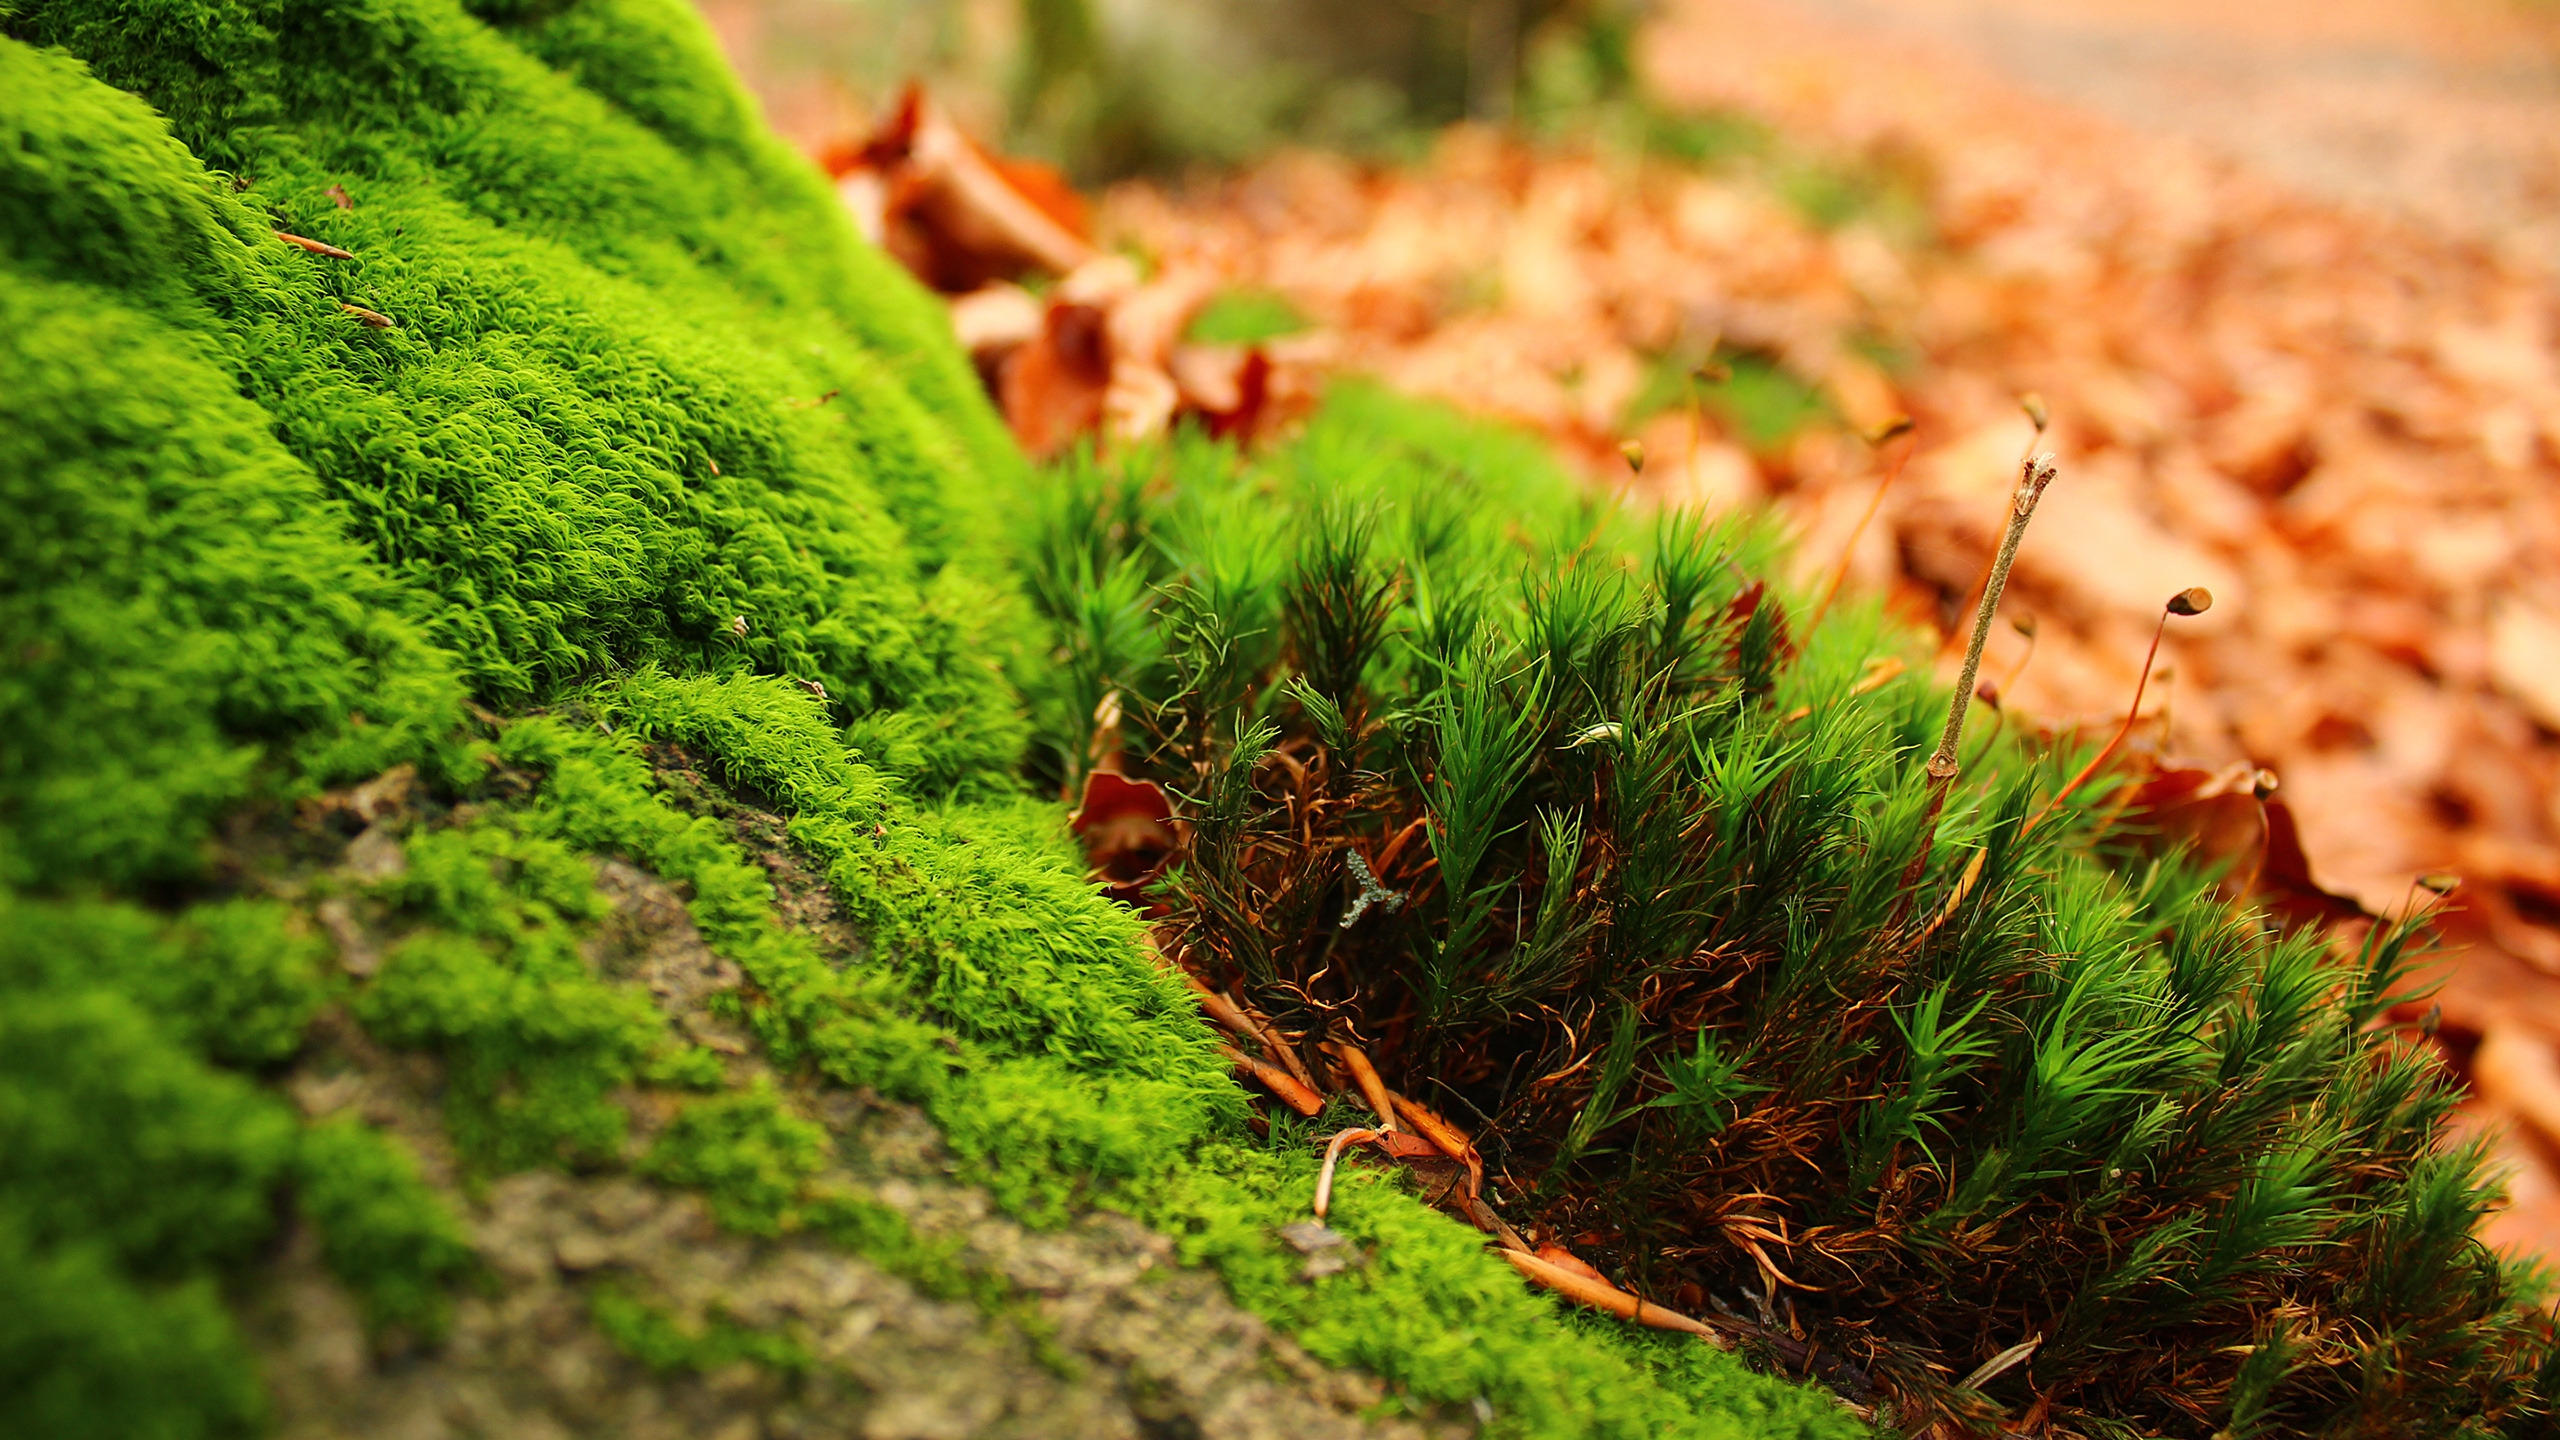 Amazing Moss for 2560x1440 HDTV resolution